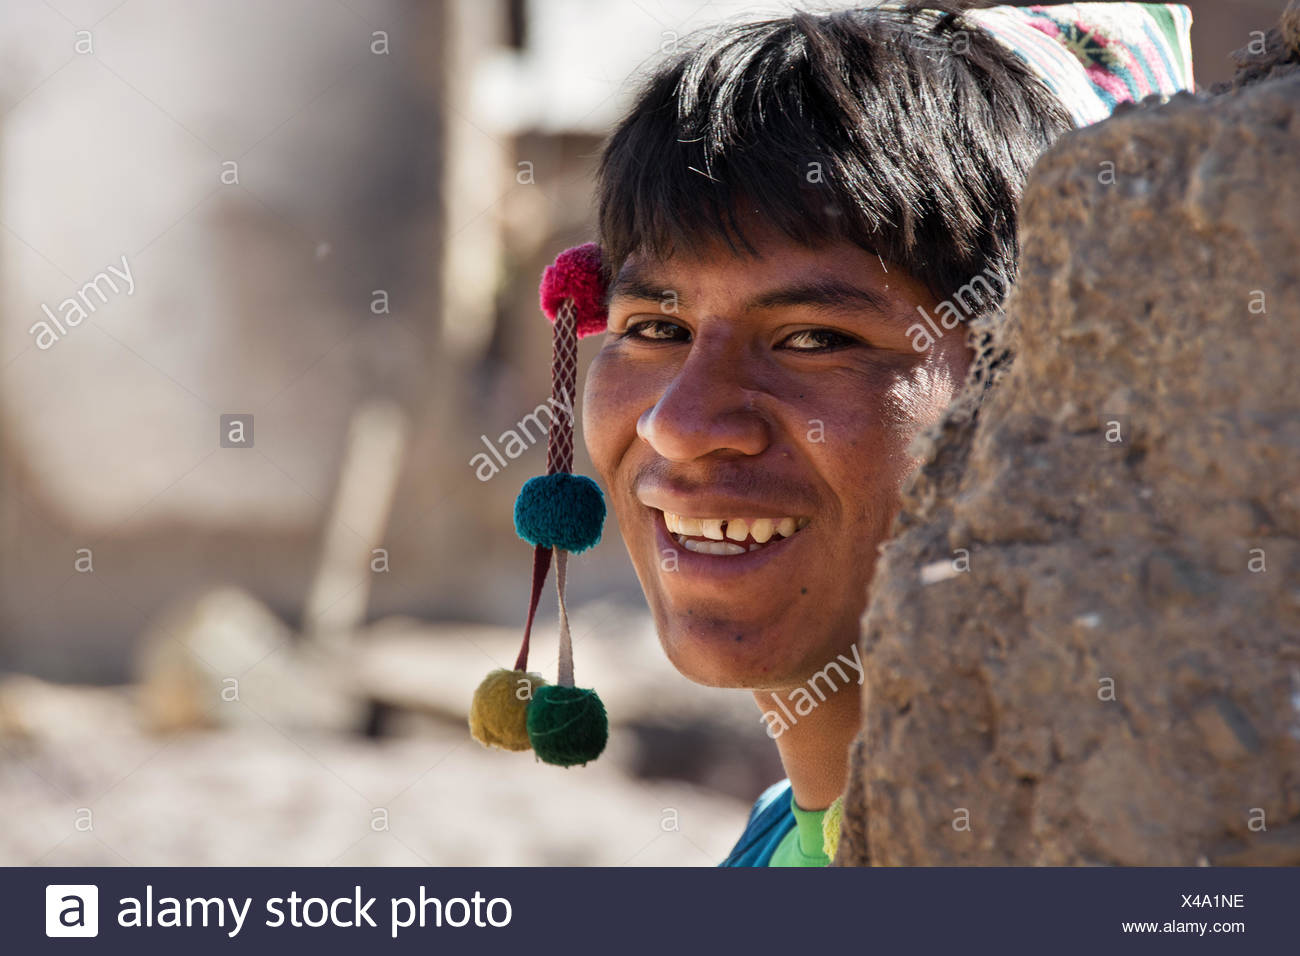 Curious boy with hat, boarding school, Potosi, Bolivia - Stock Image